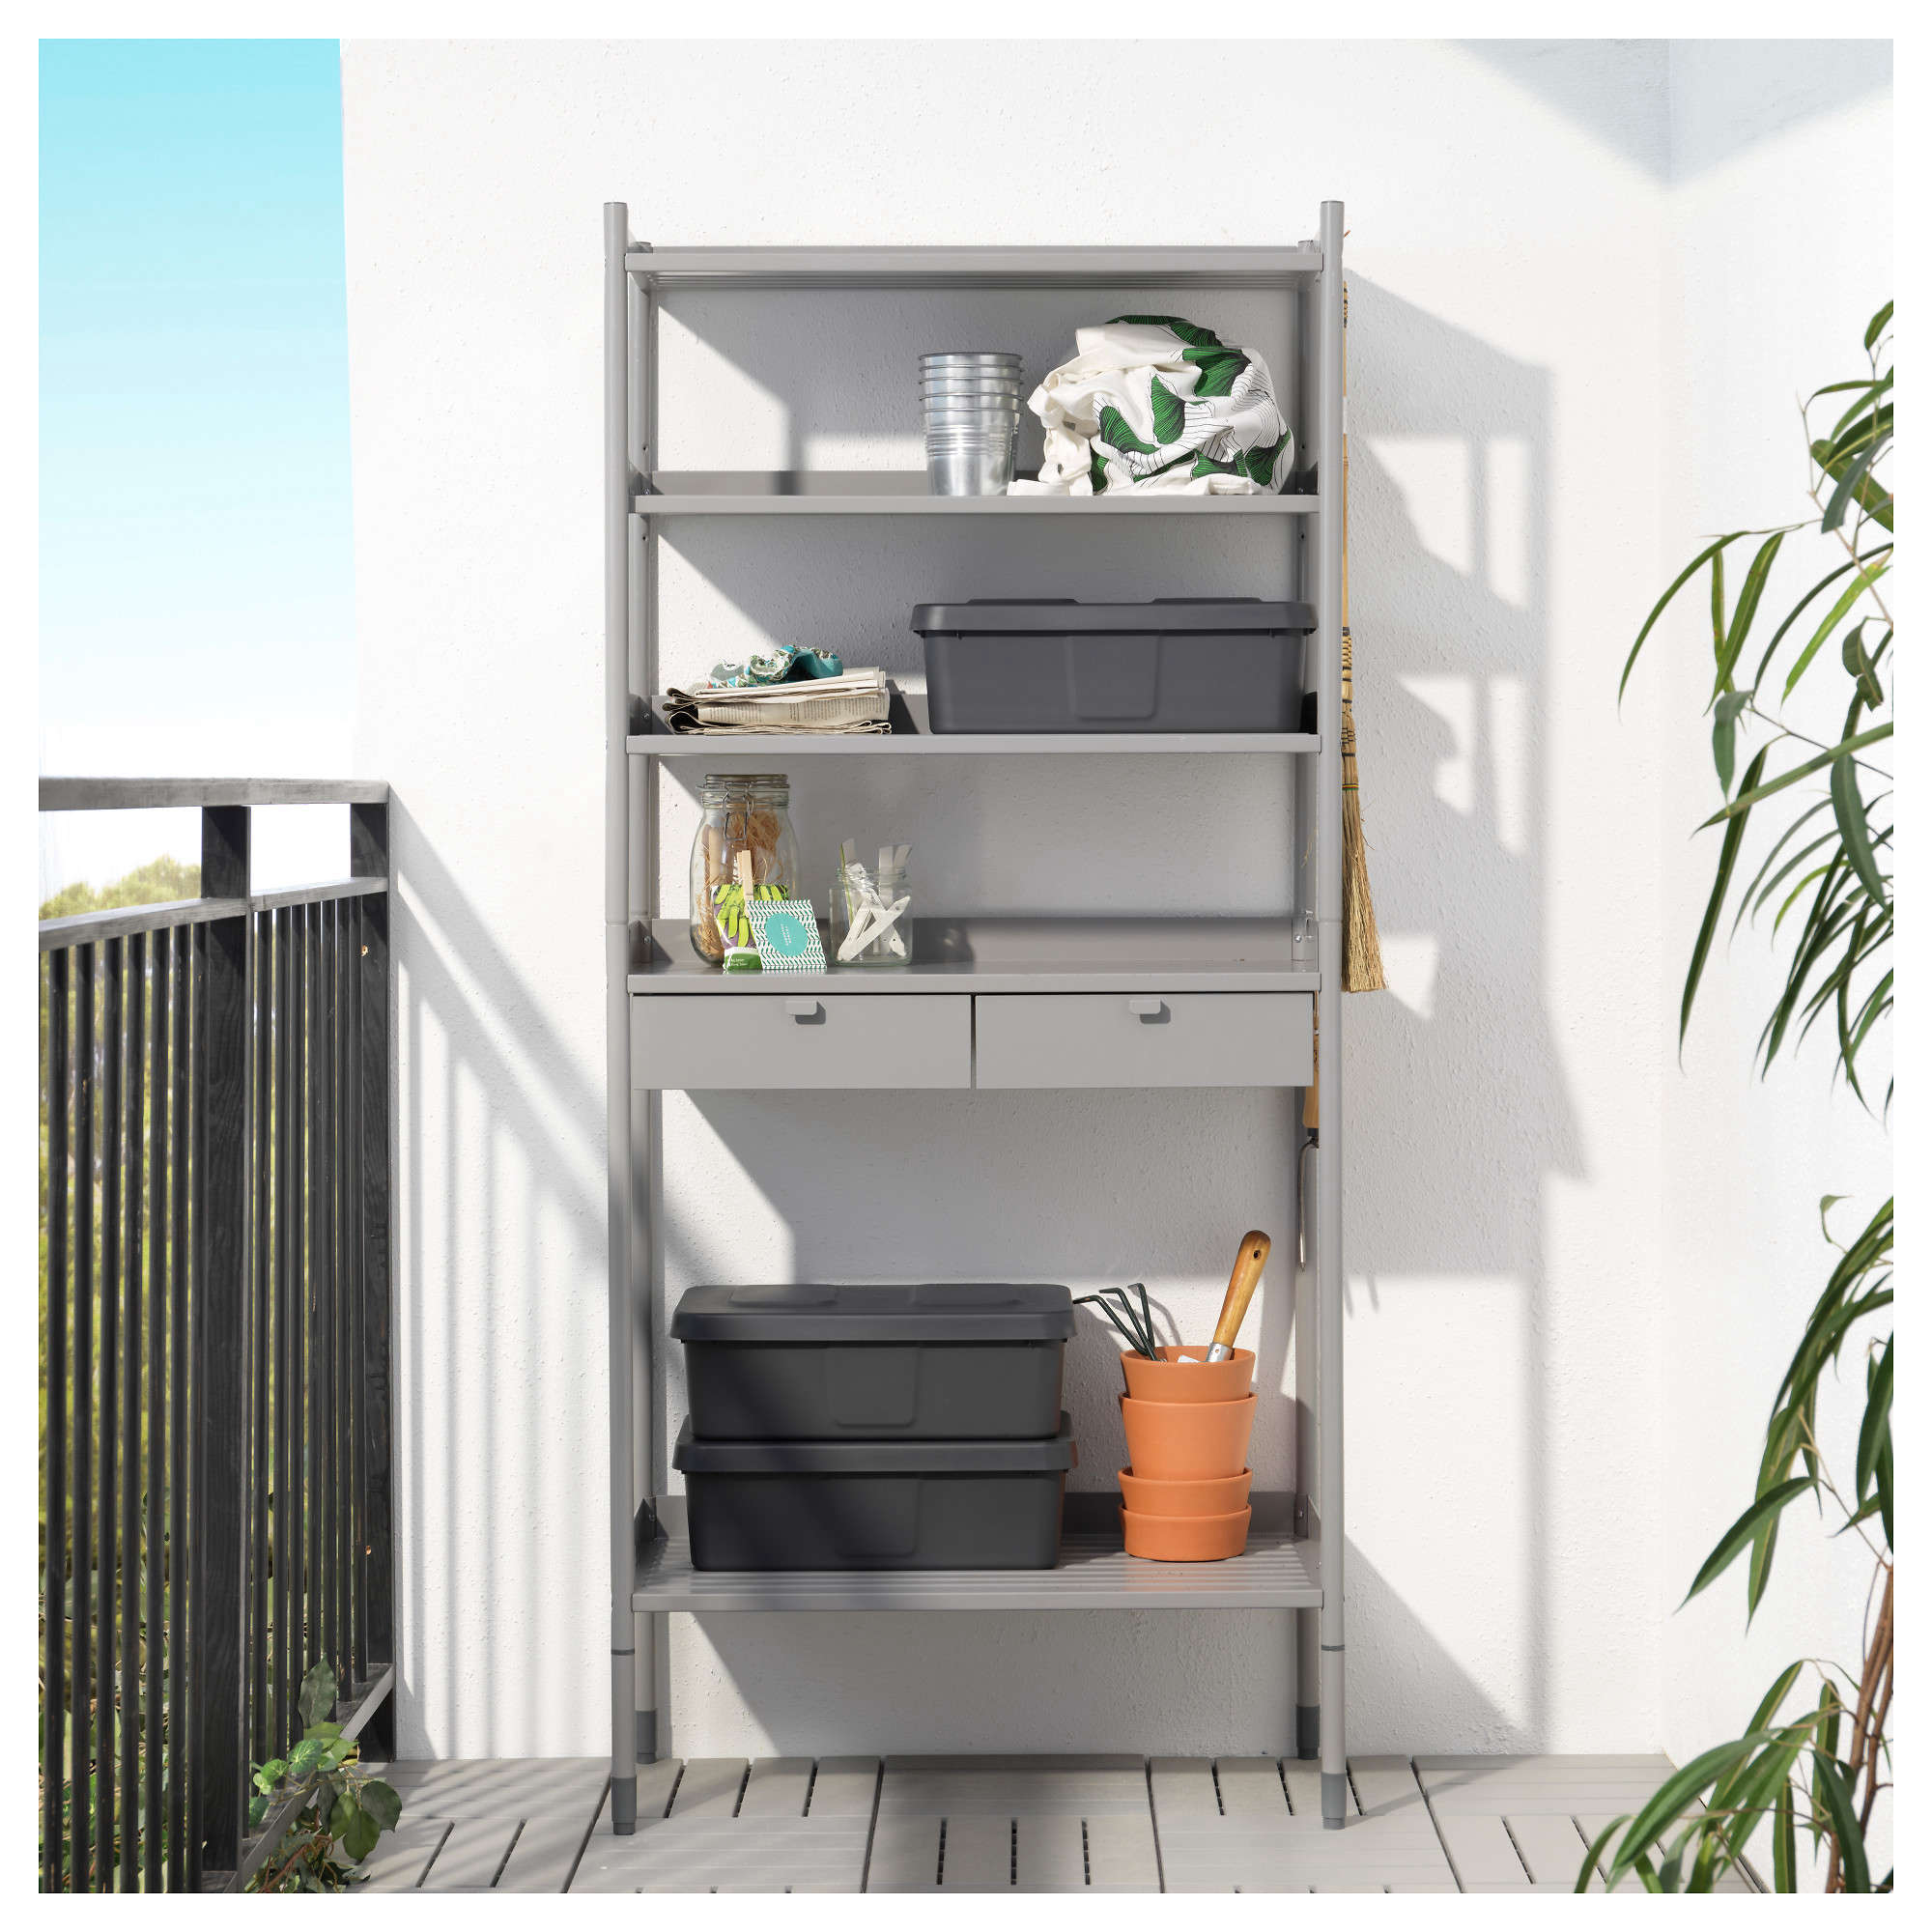 in sink uk free astonishing units countertops shed freestanding kitchens ikea cabinets stock cabinet full lowes with kitchen standing farmhouse set size of base sheds storage